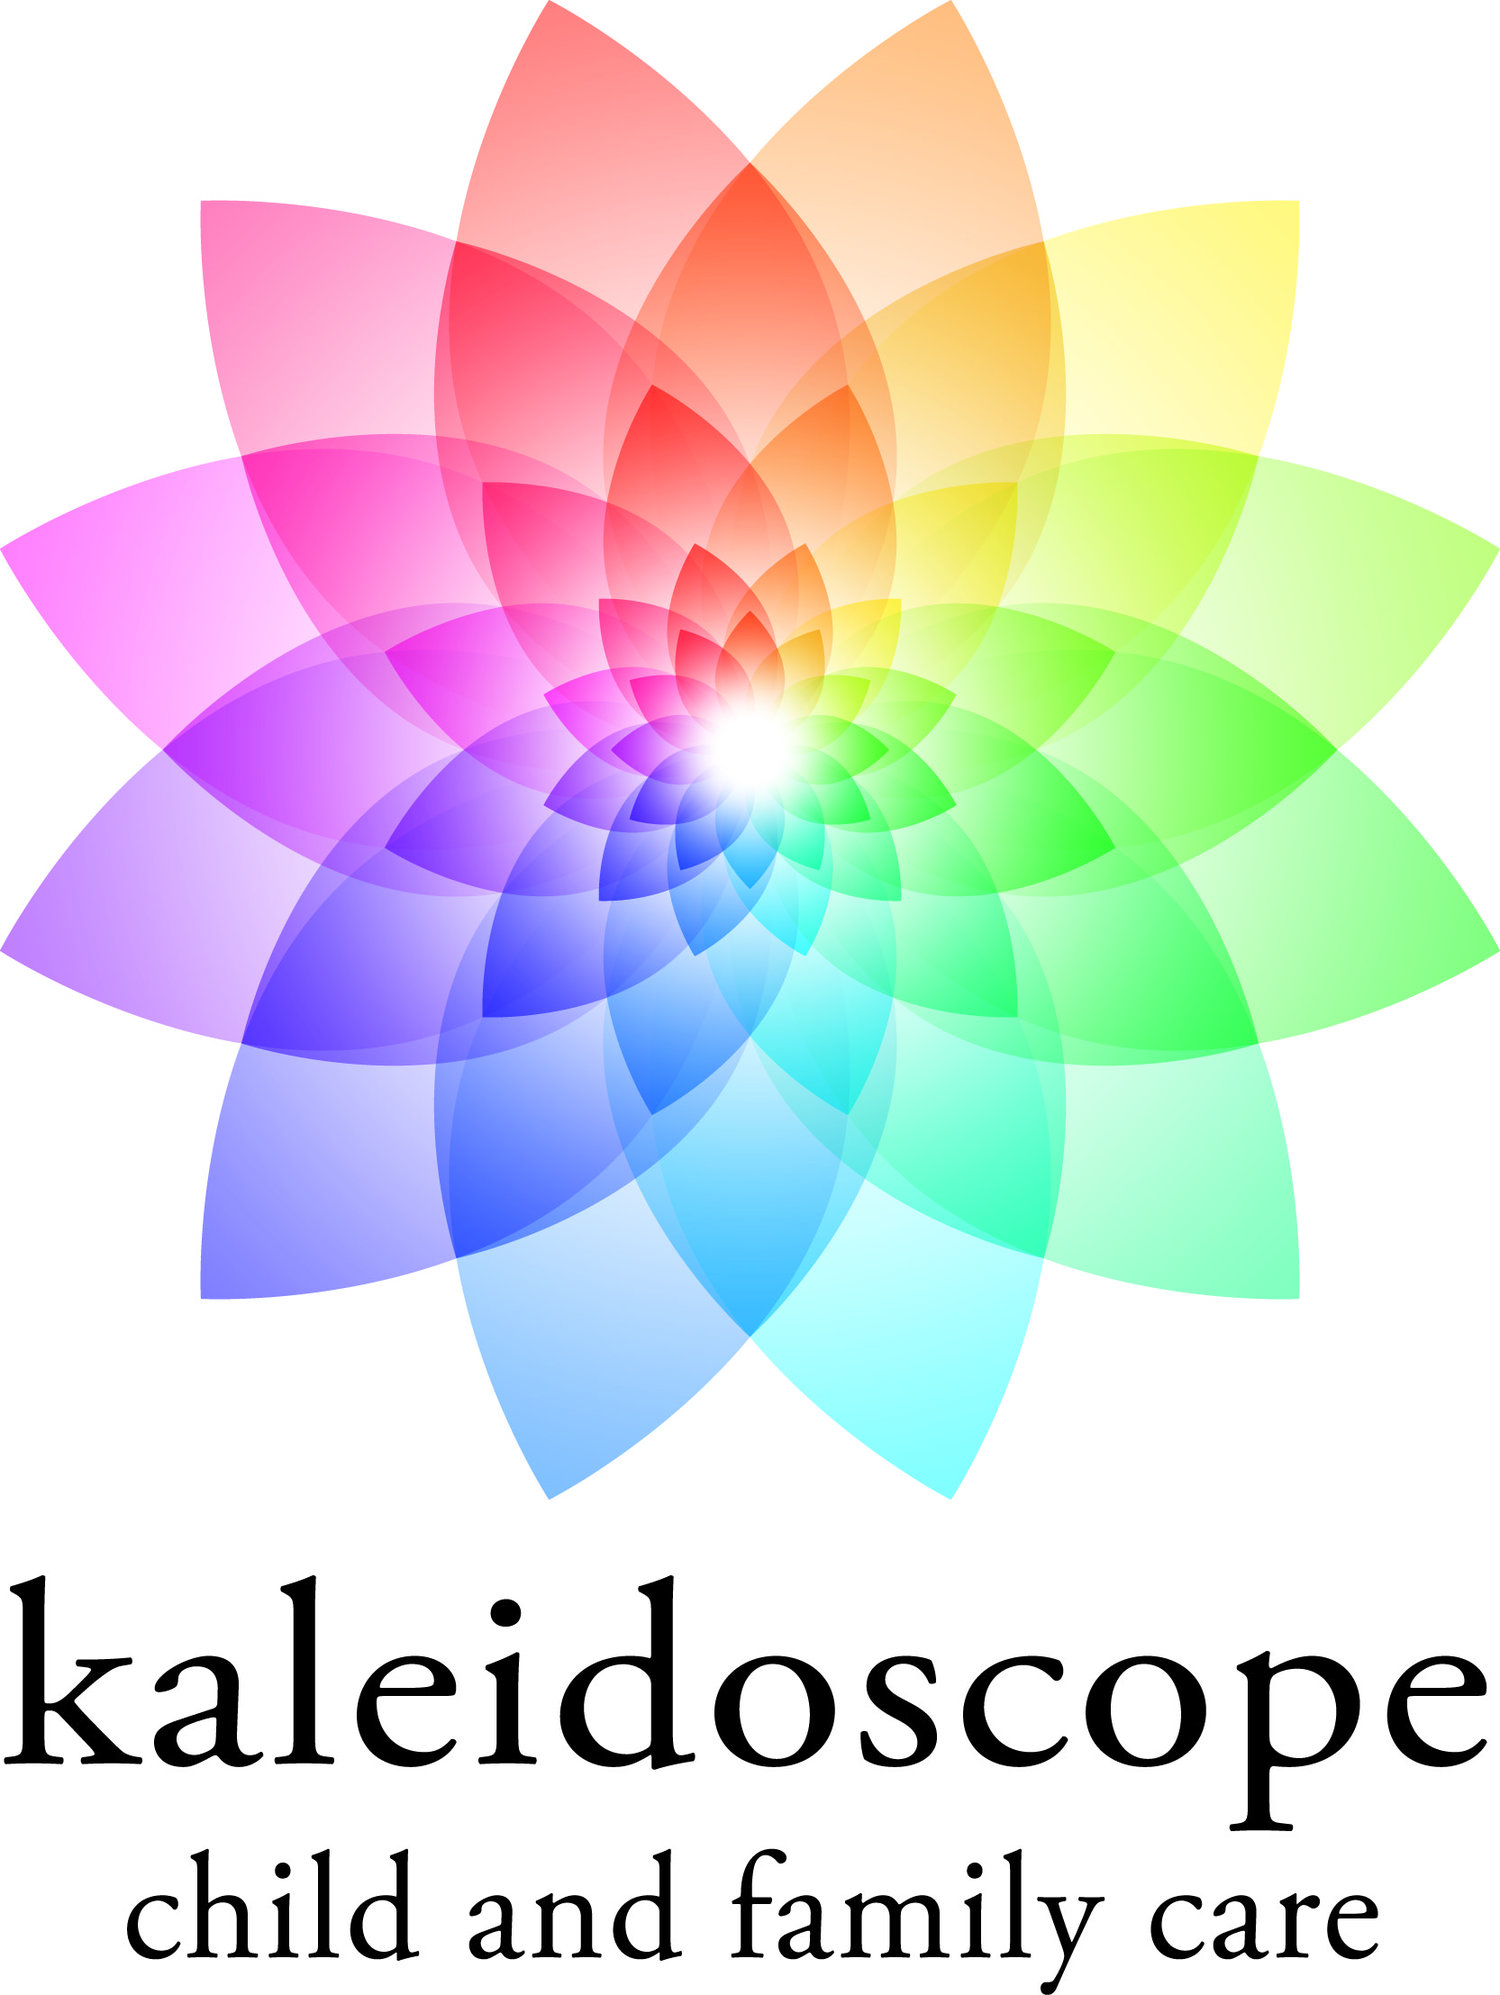 kaleidoscope child and family care